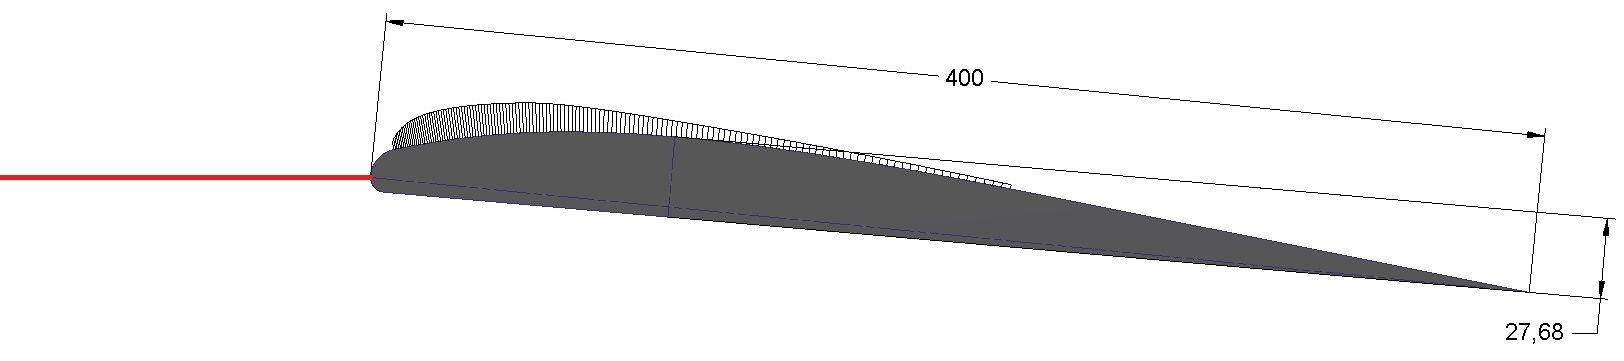 ground effect aircraft airfoil